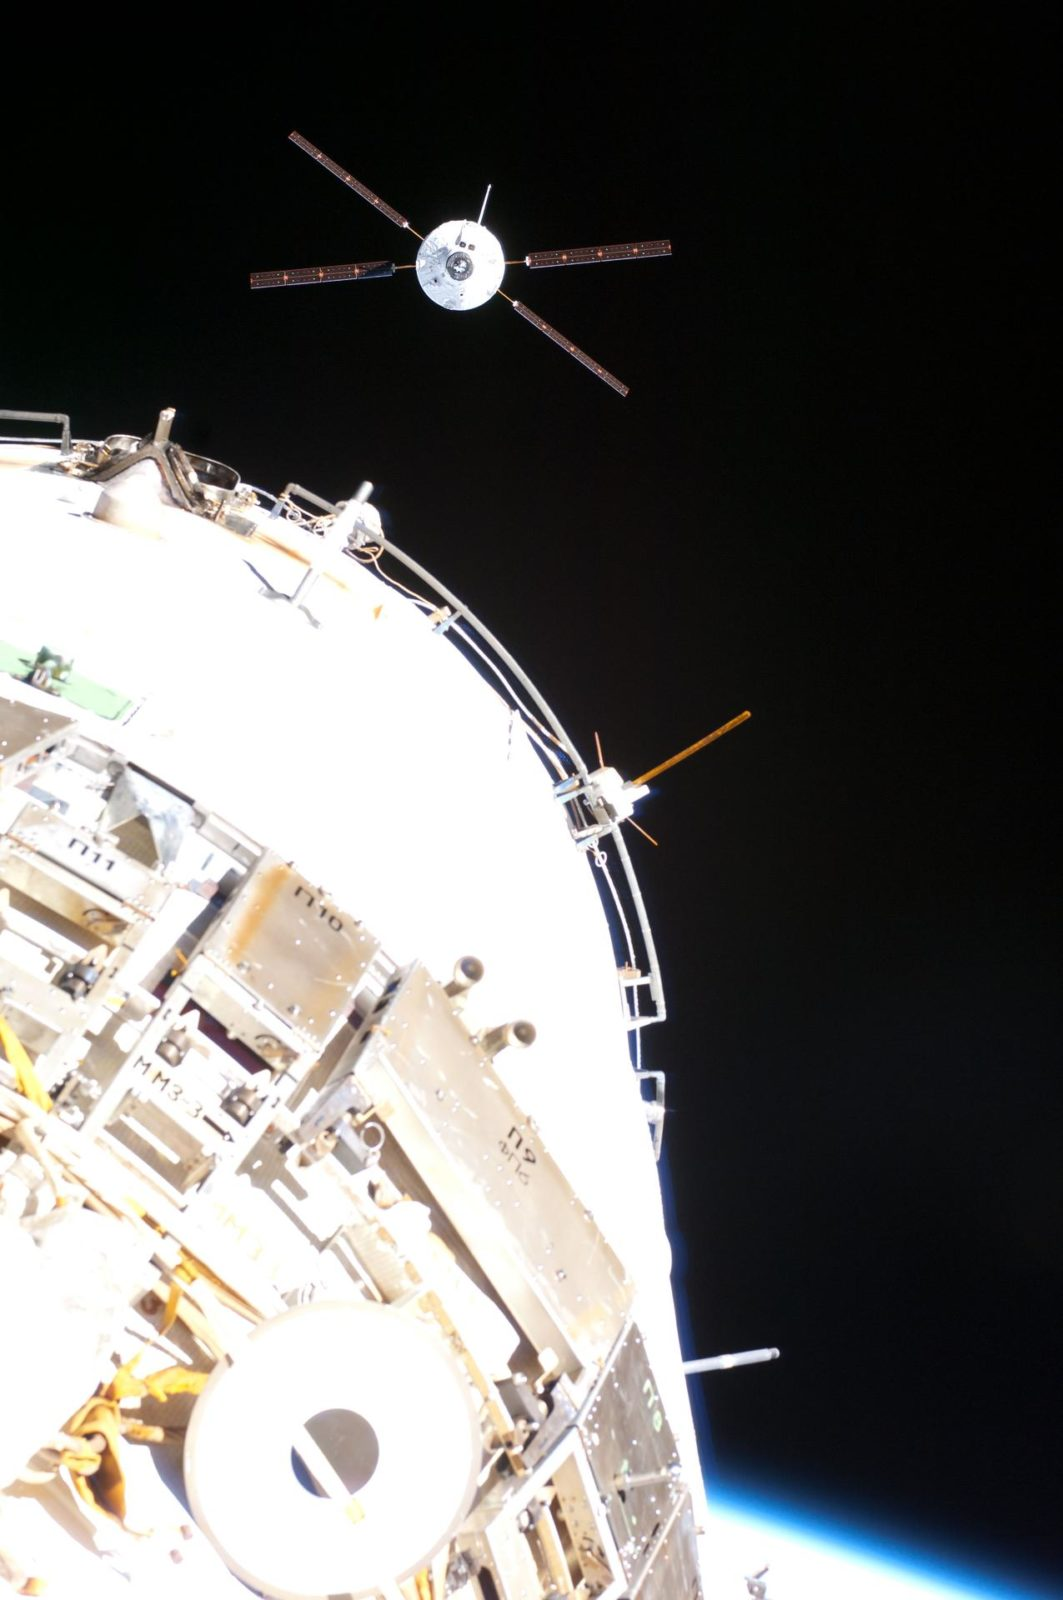 ATV-4 approach to ISS